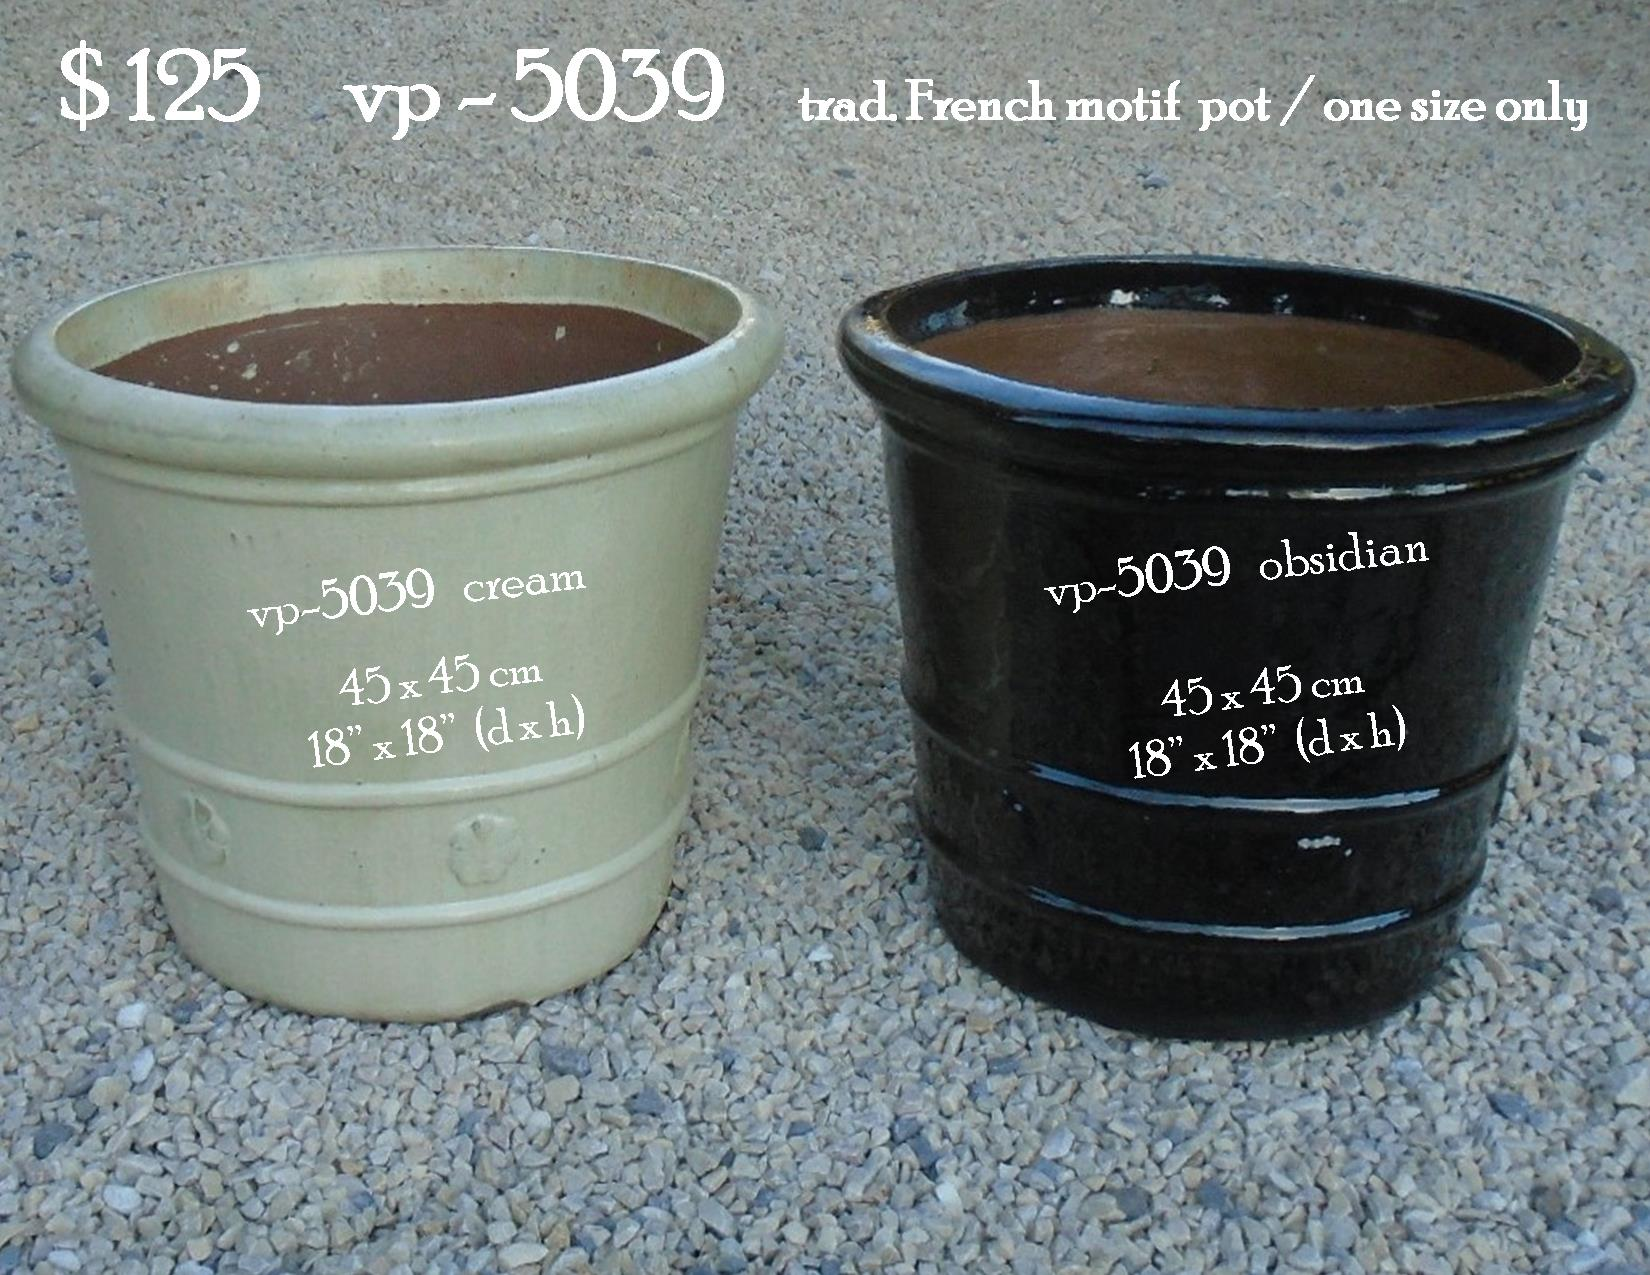 vp - 5039      trad. French motif  pot .